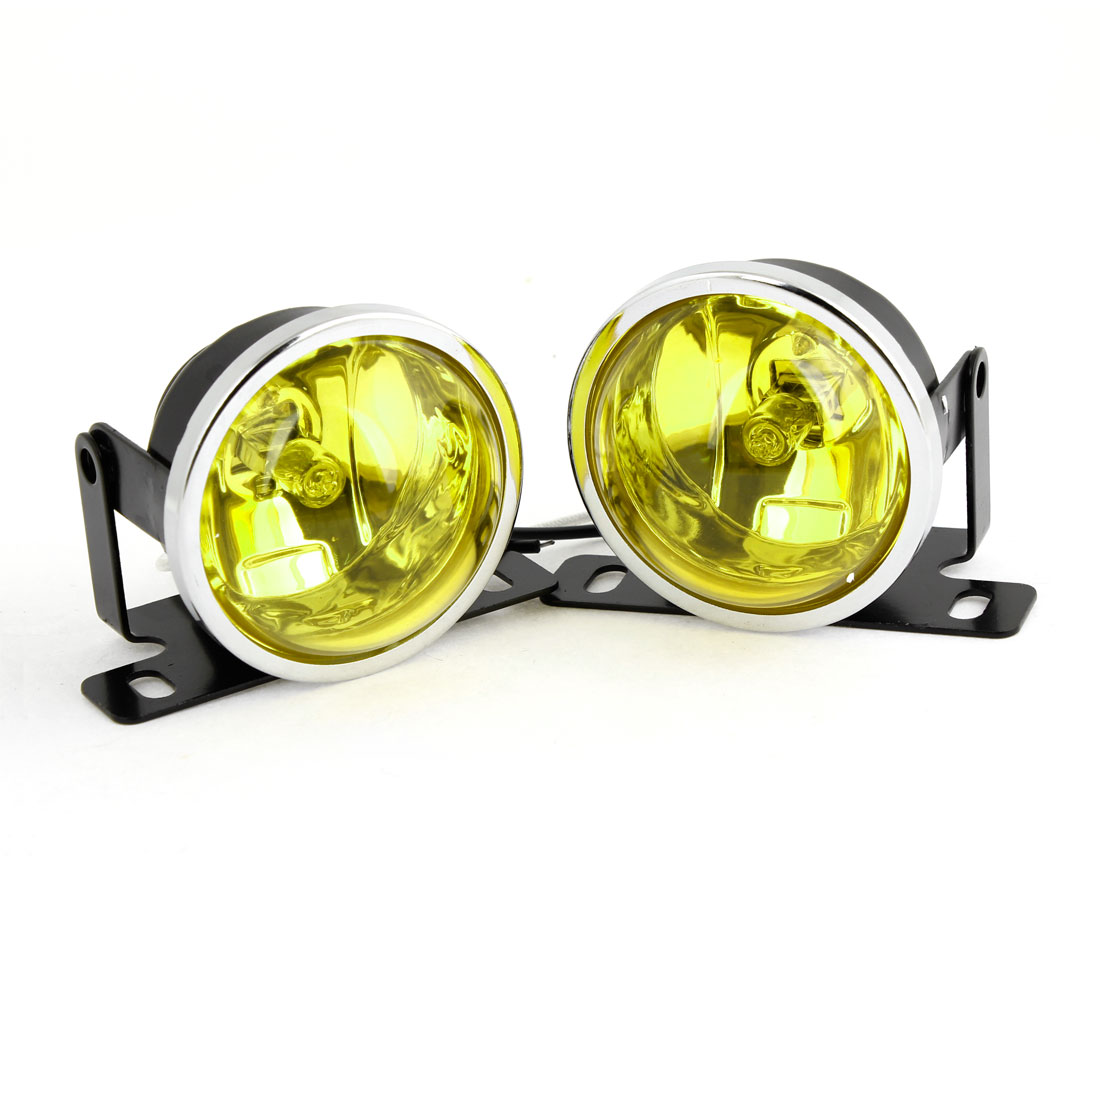 Pair DC 12V 55W Glass Lens H3 Yellow Halogen Light Car Fog Driving Lamp Kit